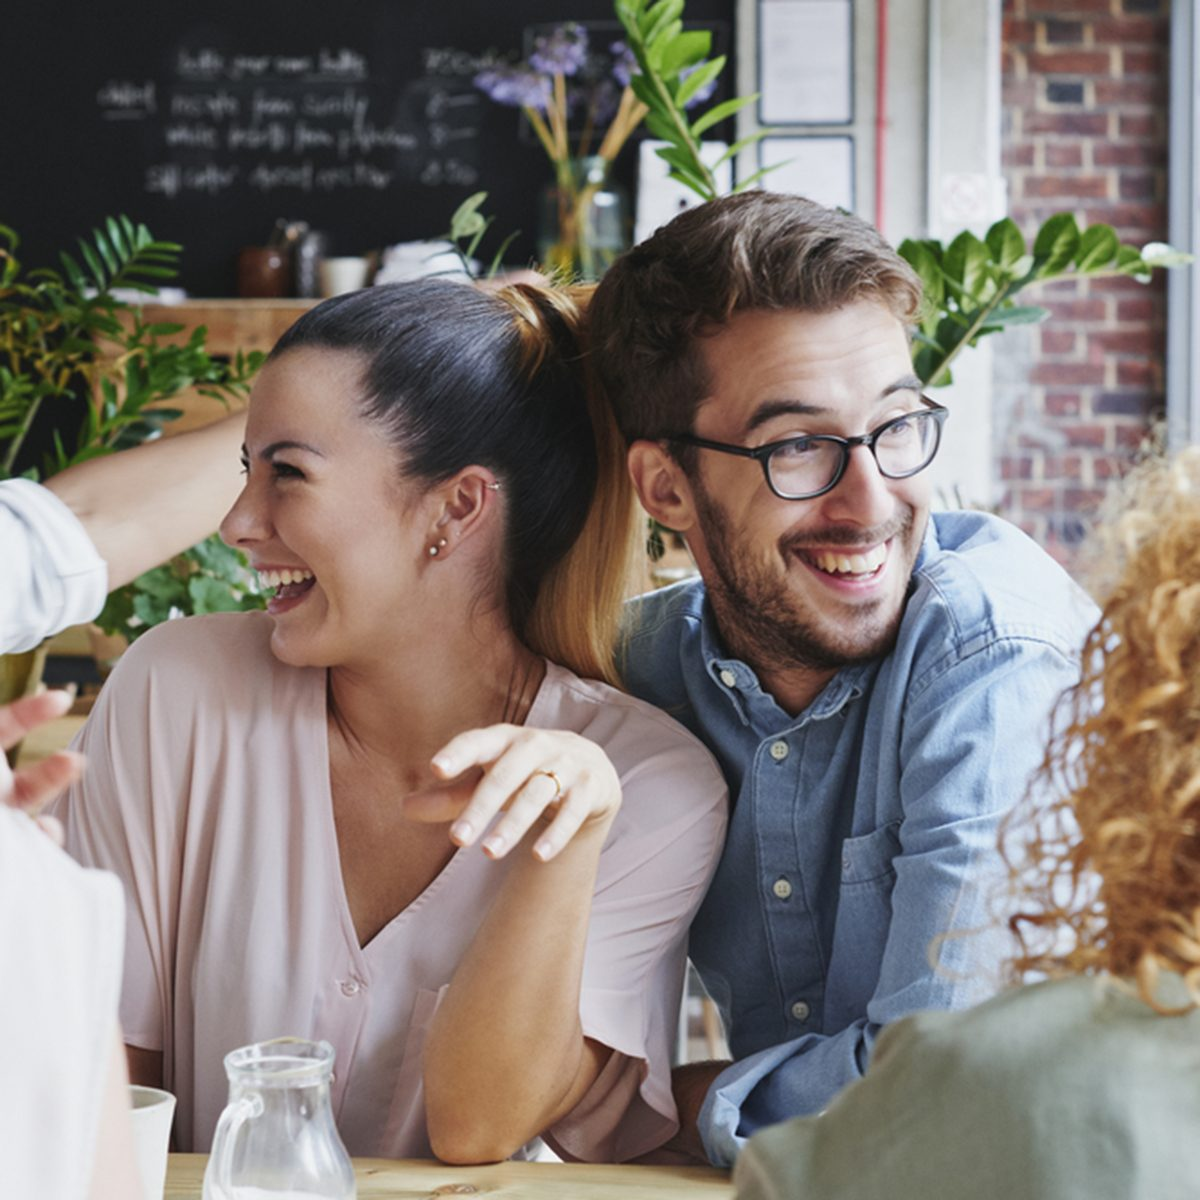 Woman showing engagement ring to friends in cafe celebrating